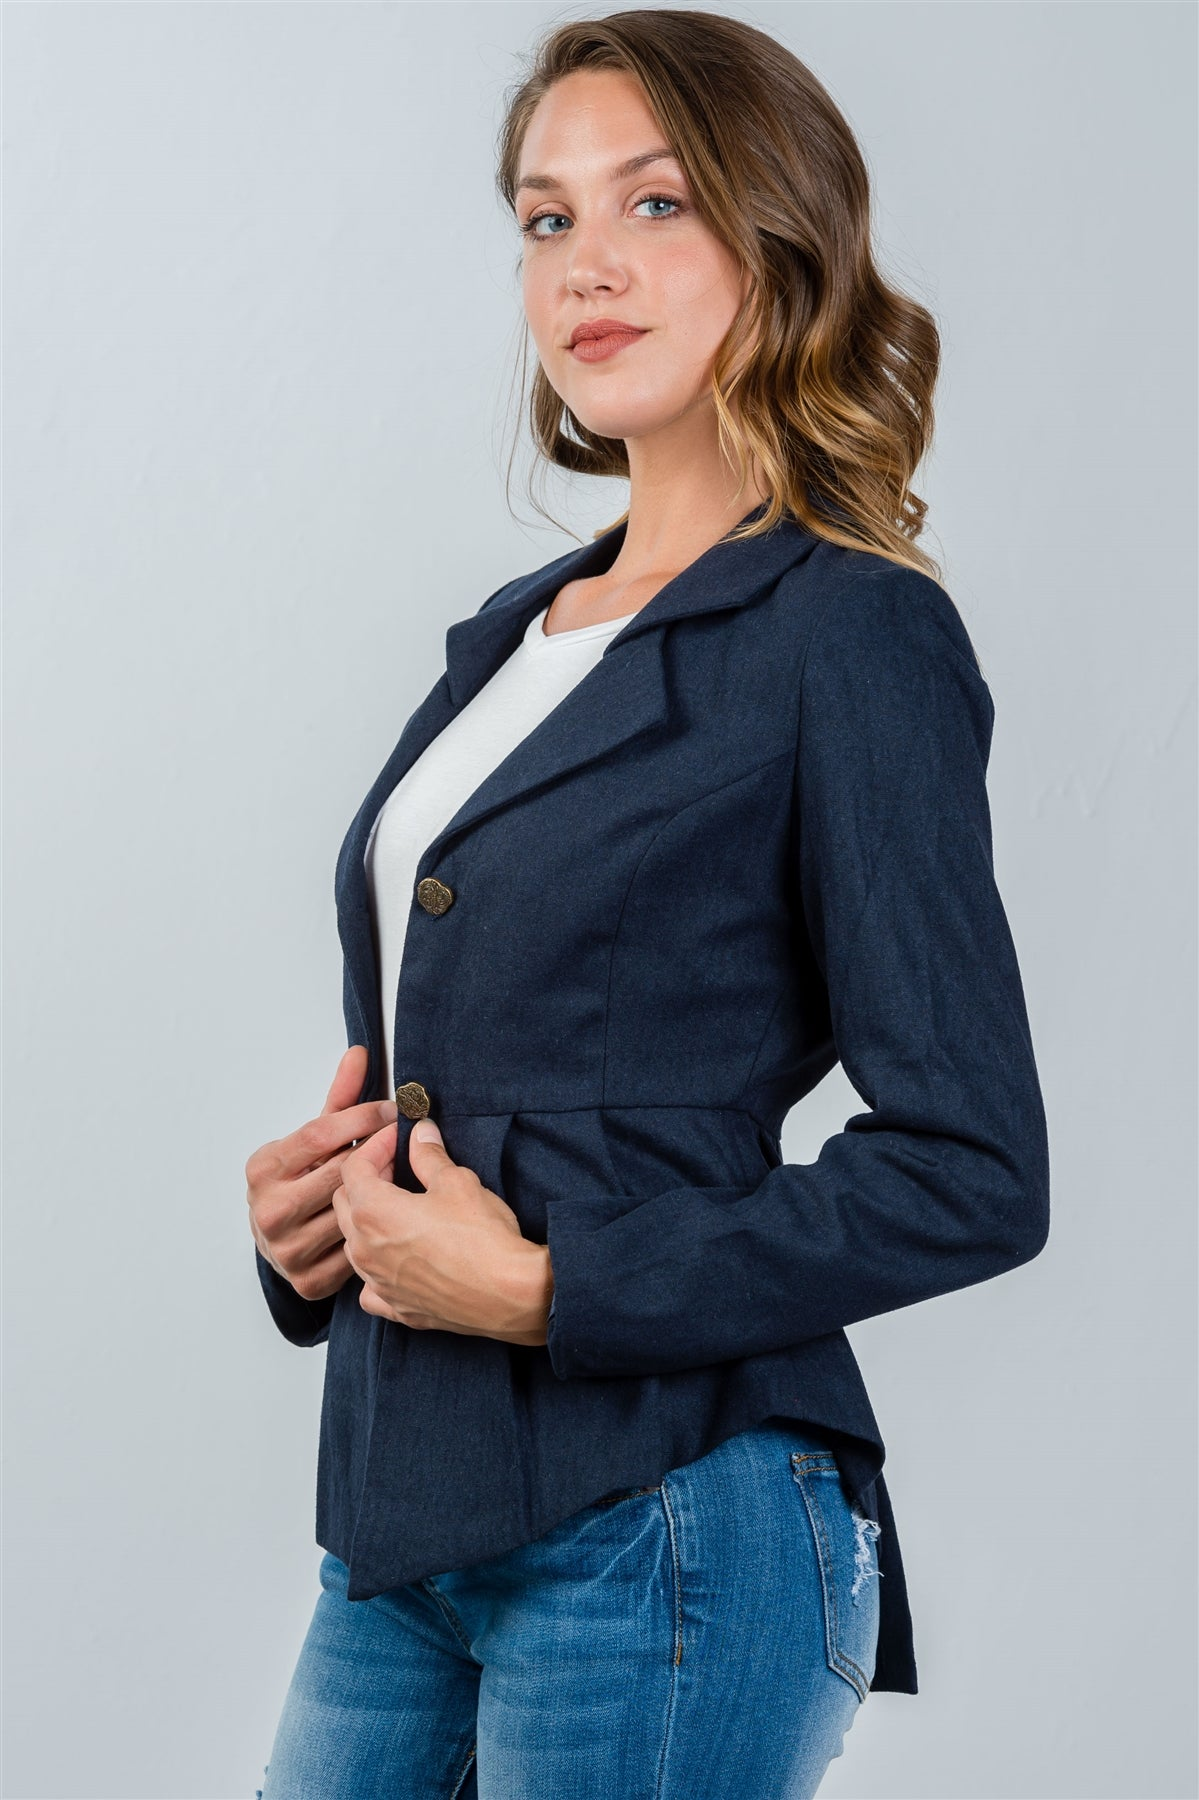 Ladies fashion navy pleated peplum hem jacket - Radiant